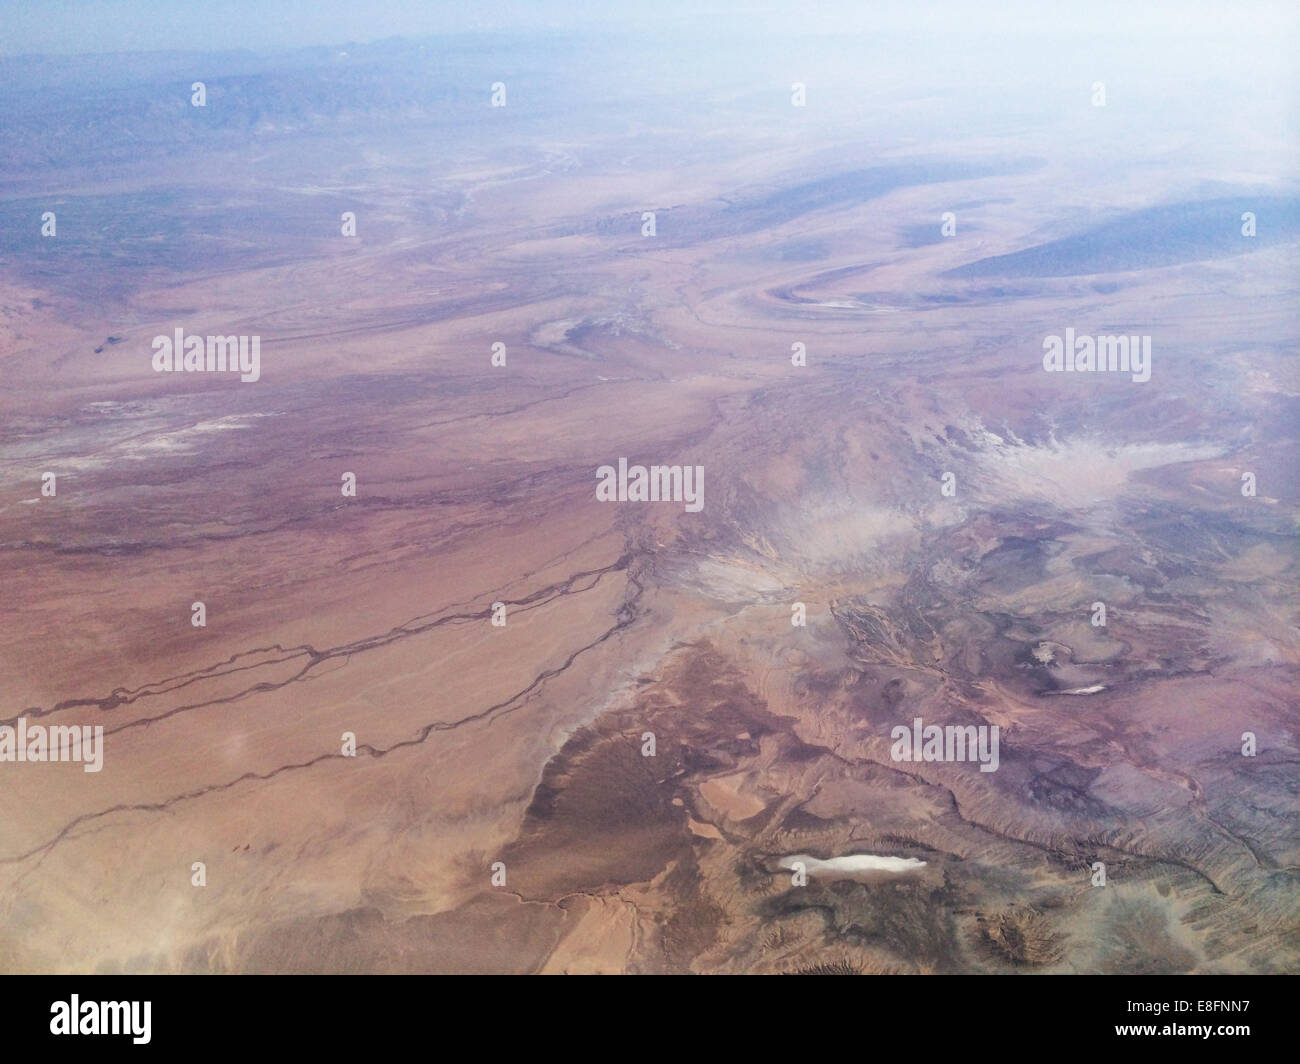 Mountain range from above - Stock Image